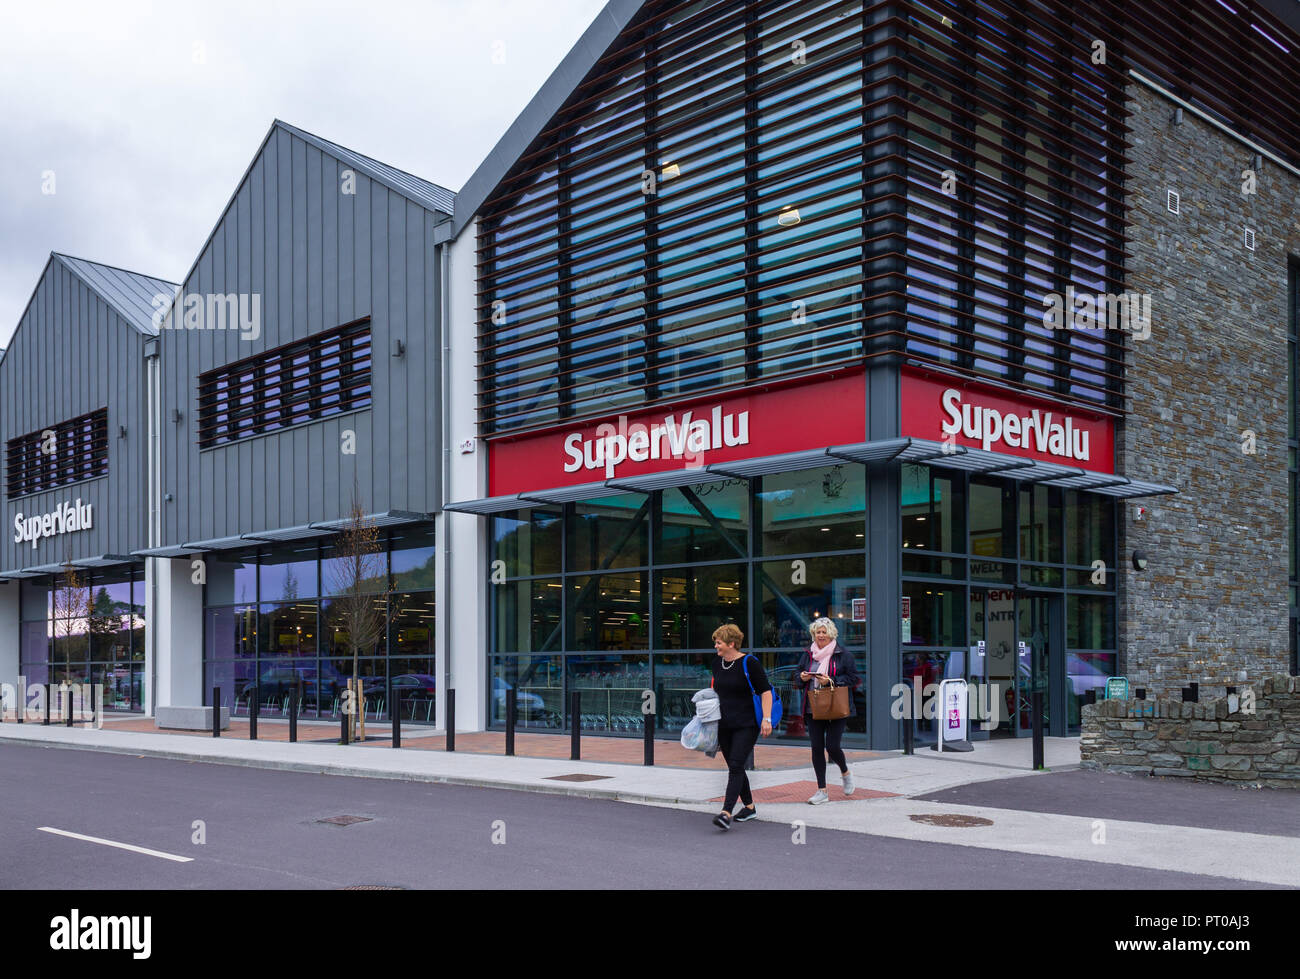 shoppers-leaving-a-supervalu-supermarket-or-retail-store-in-bantry-west-cork-ireland-PT0AJ3.jpg